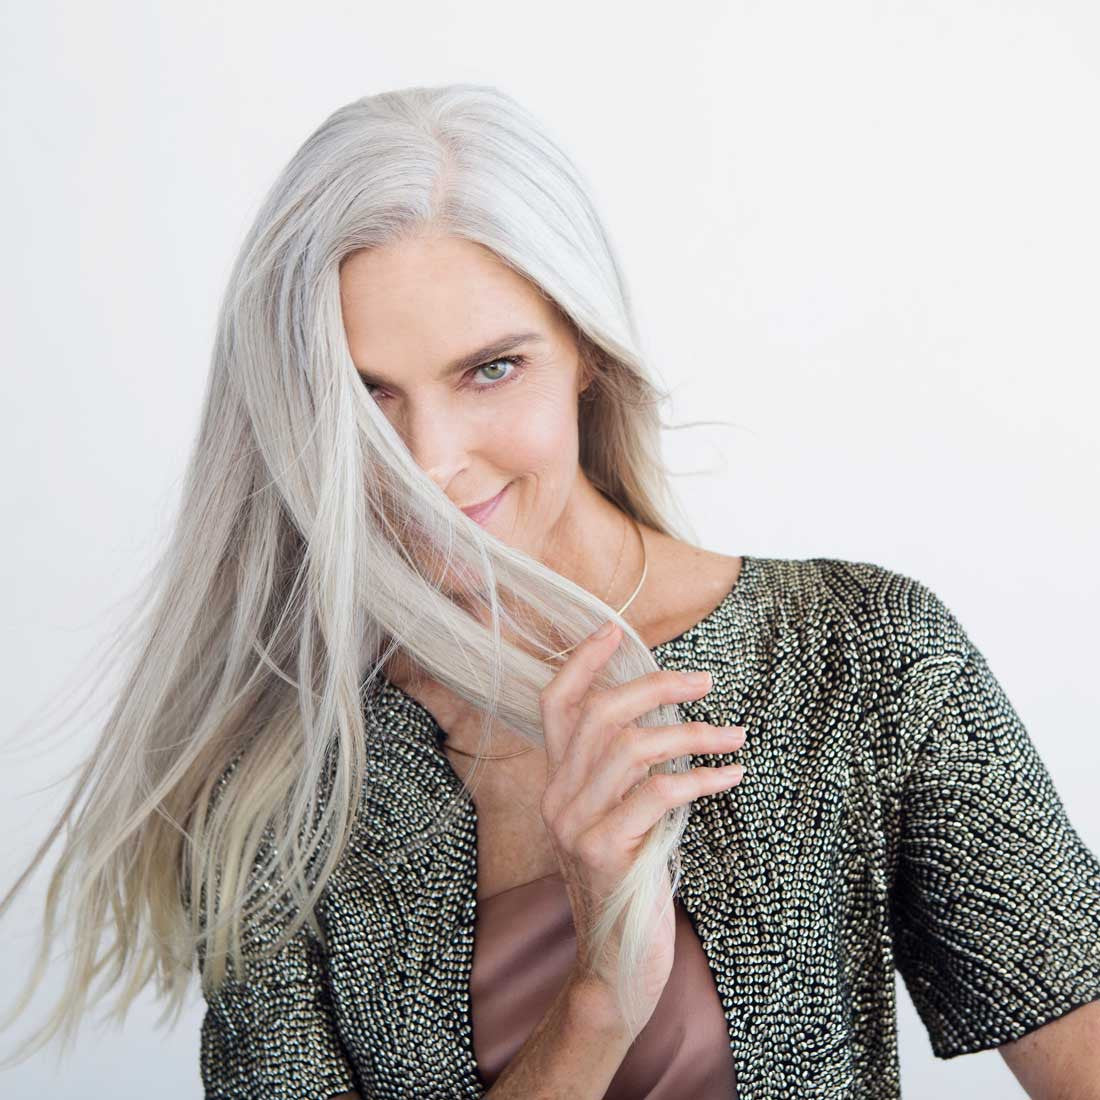 WHAT YOU CAN LEARN FROM WOMEN WHO EMBRACE THEIR GRAY HAIR